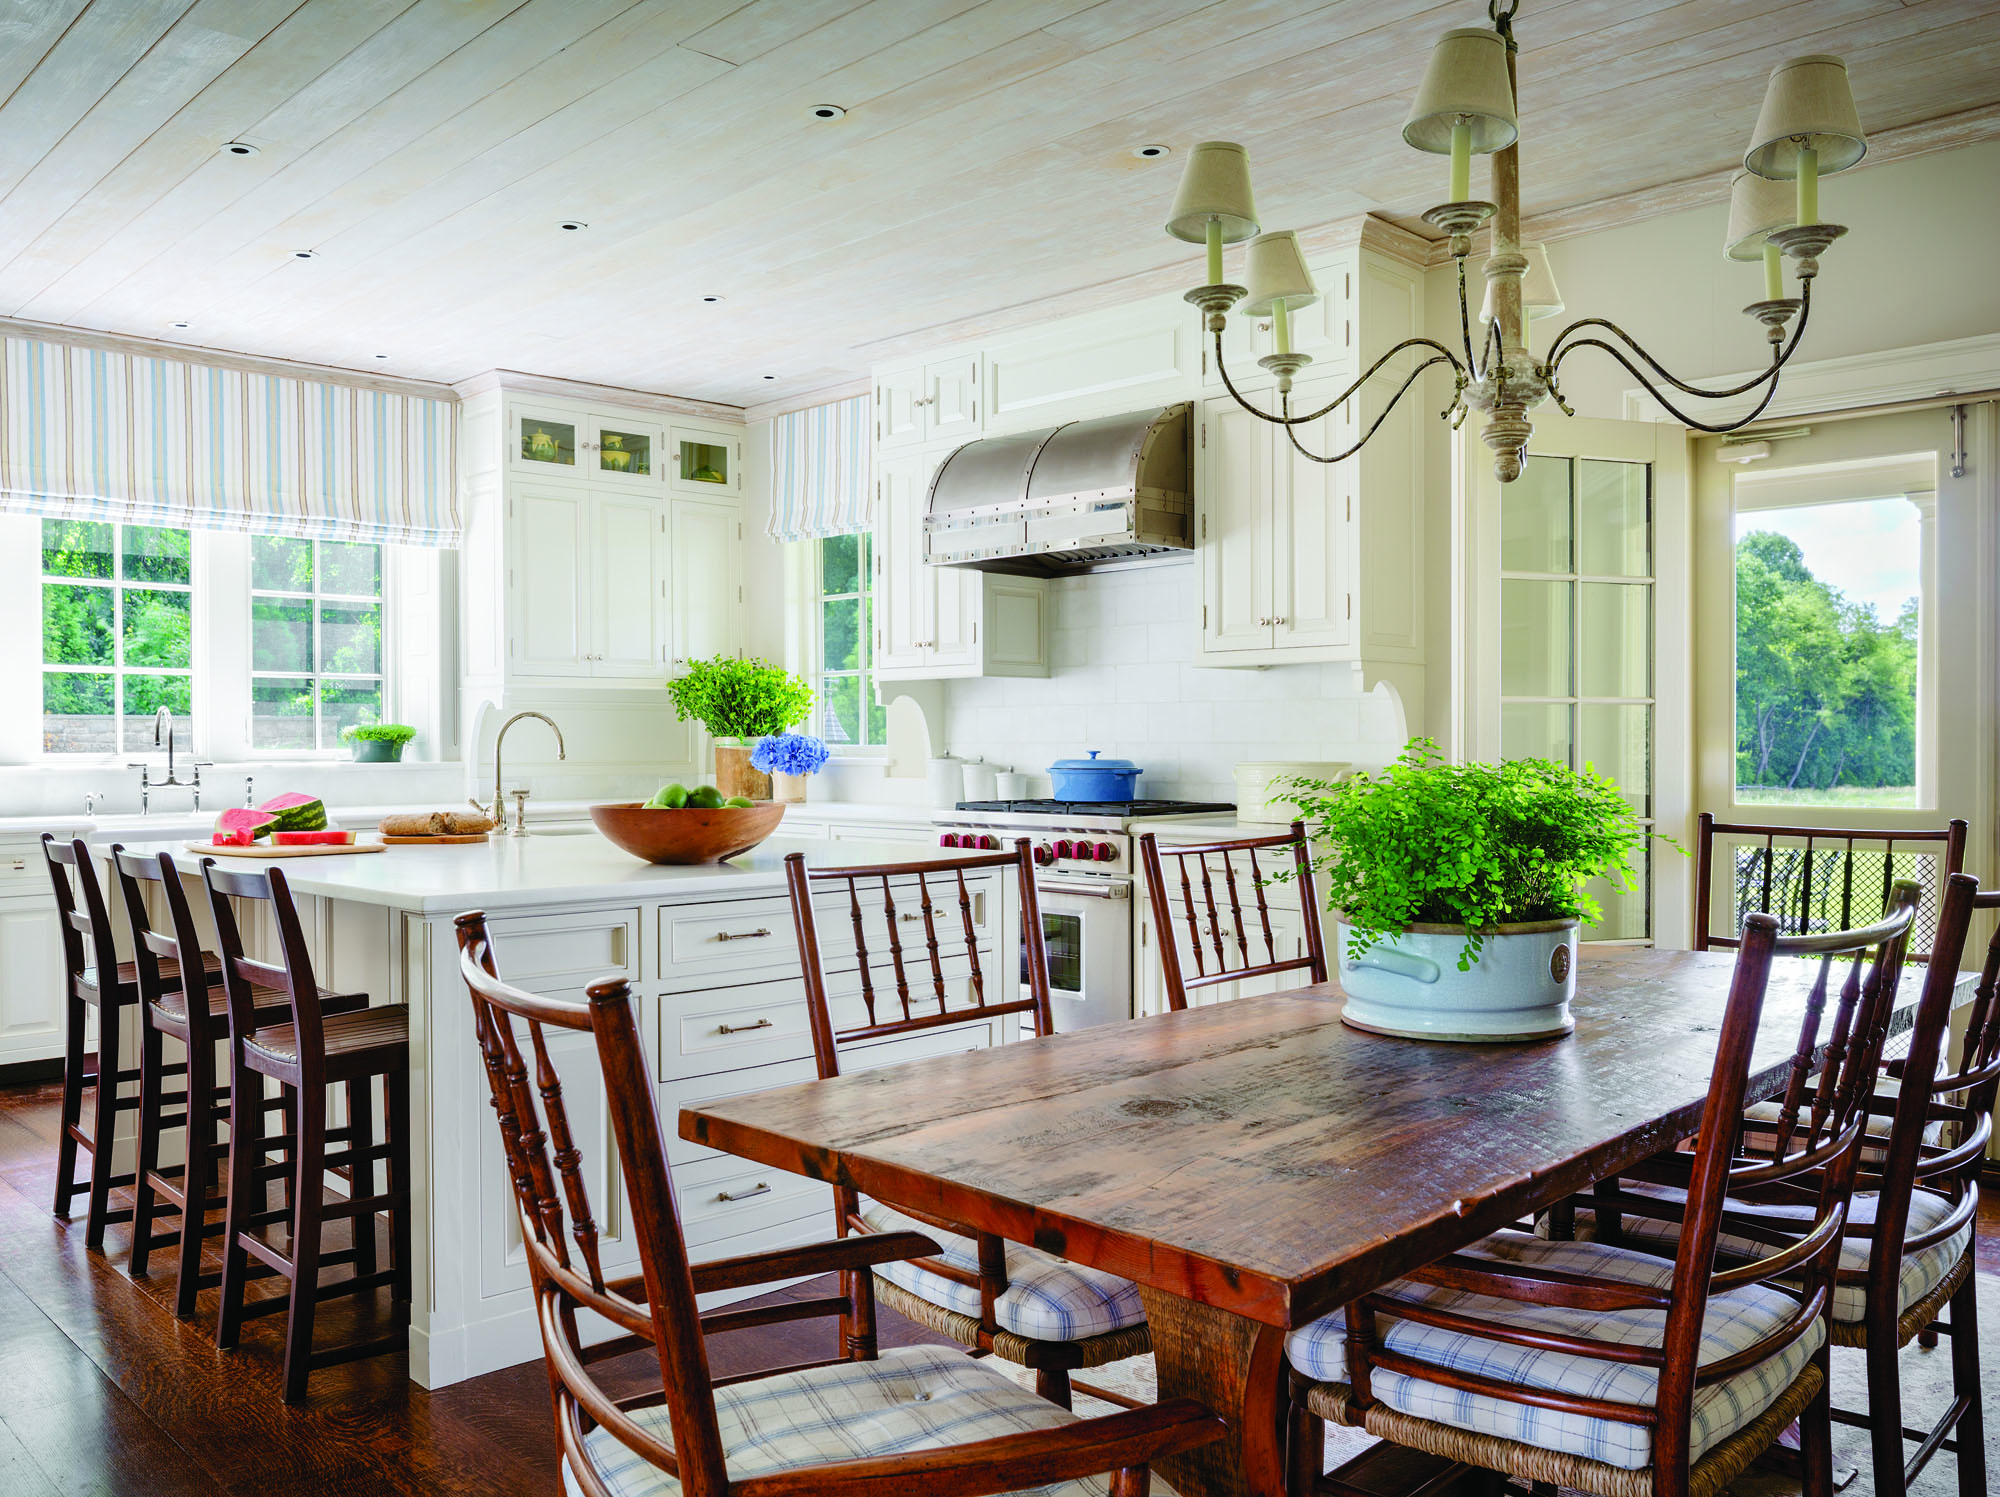 The kitchen offers a farmhouse appeal.